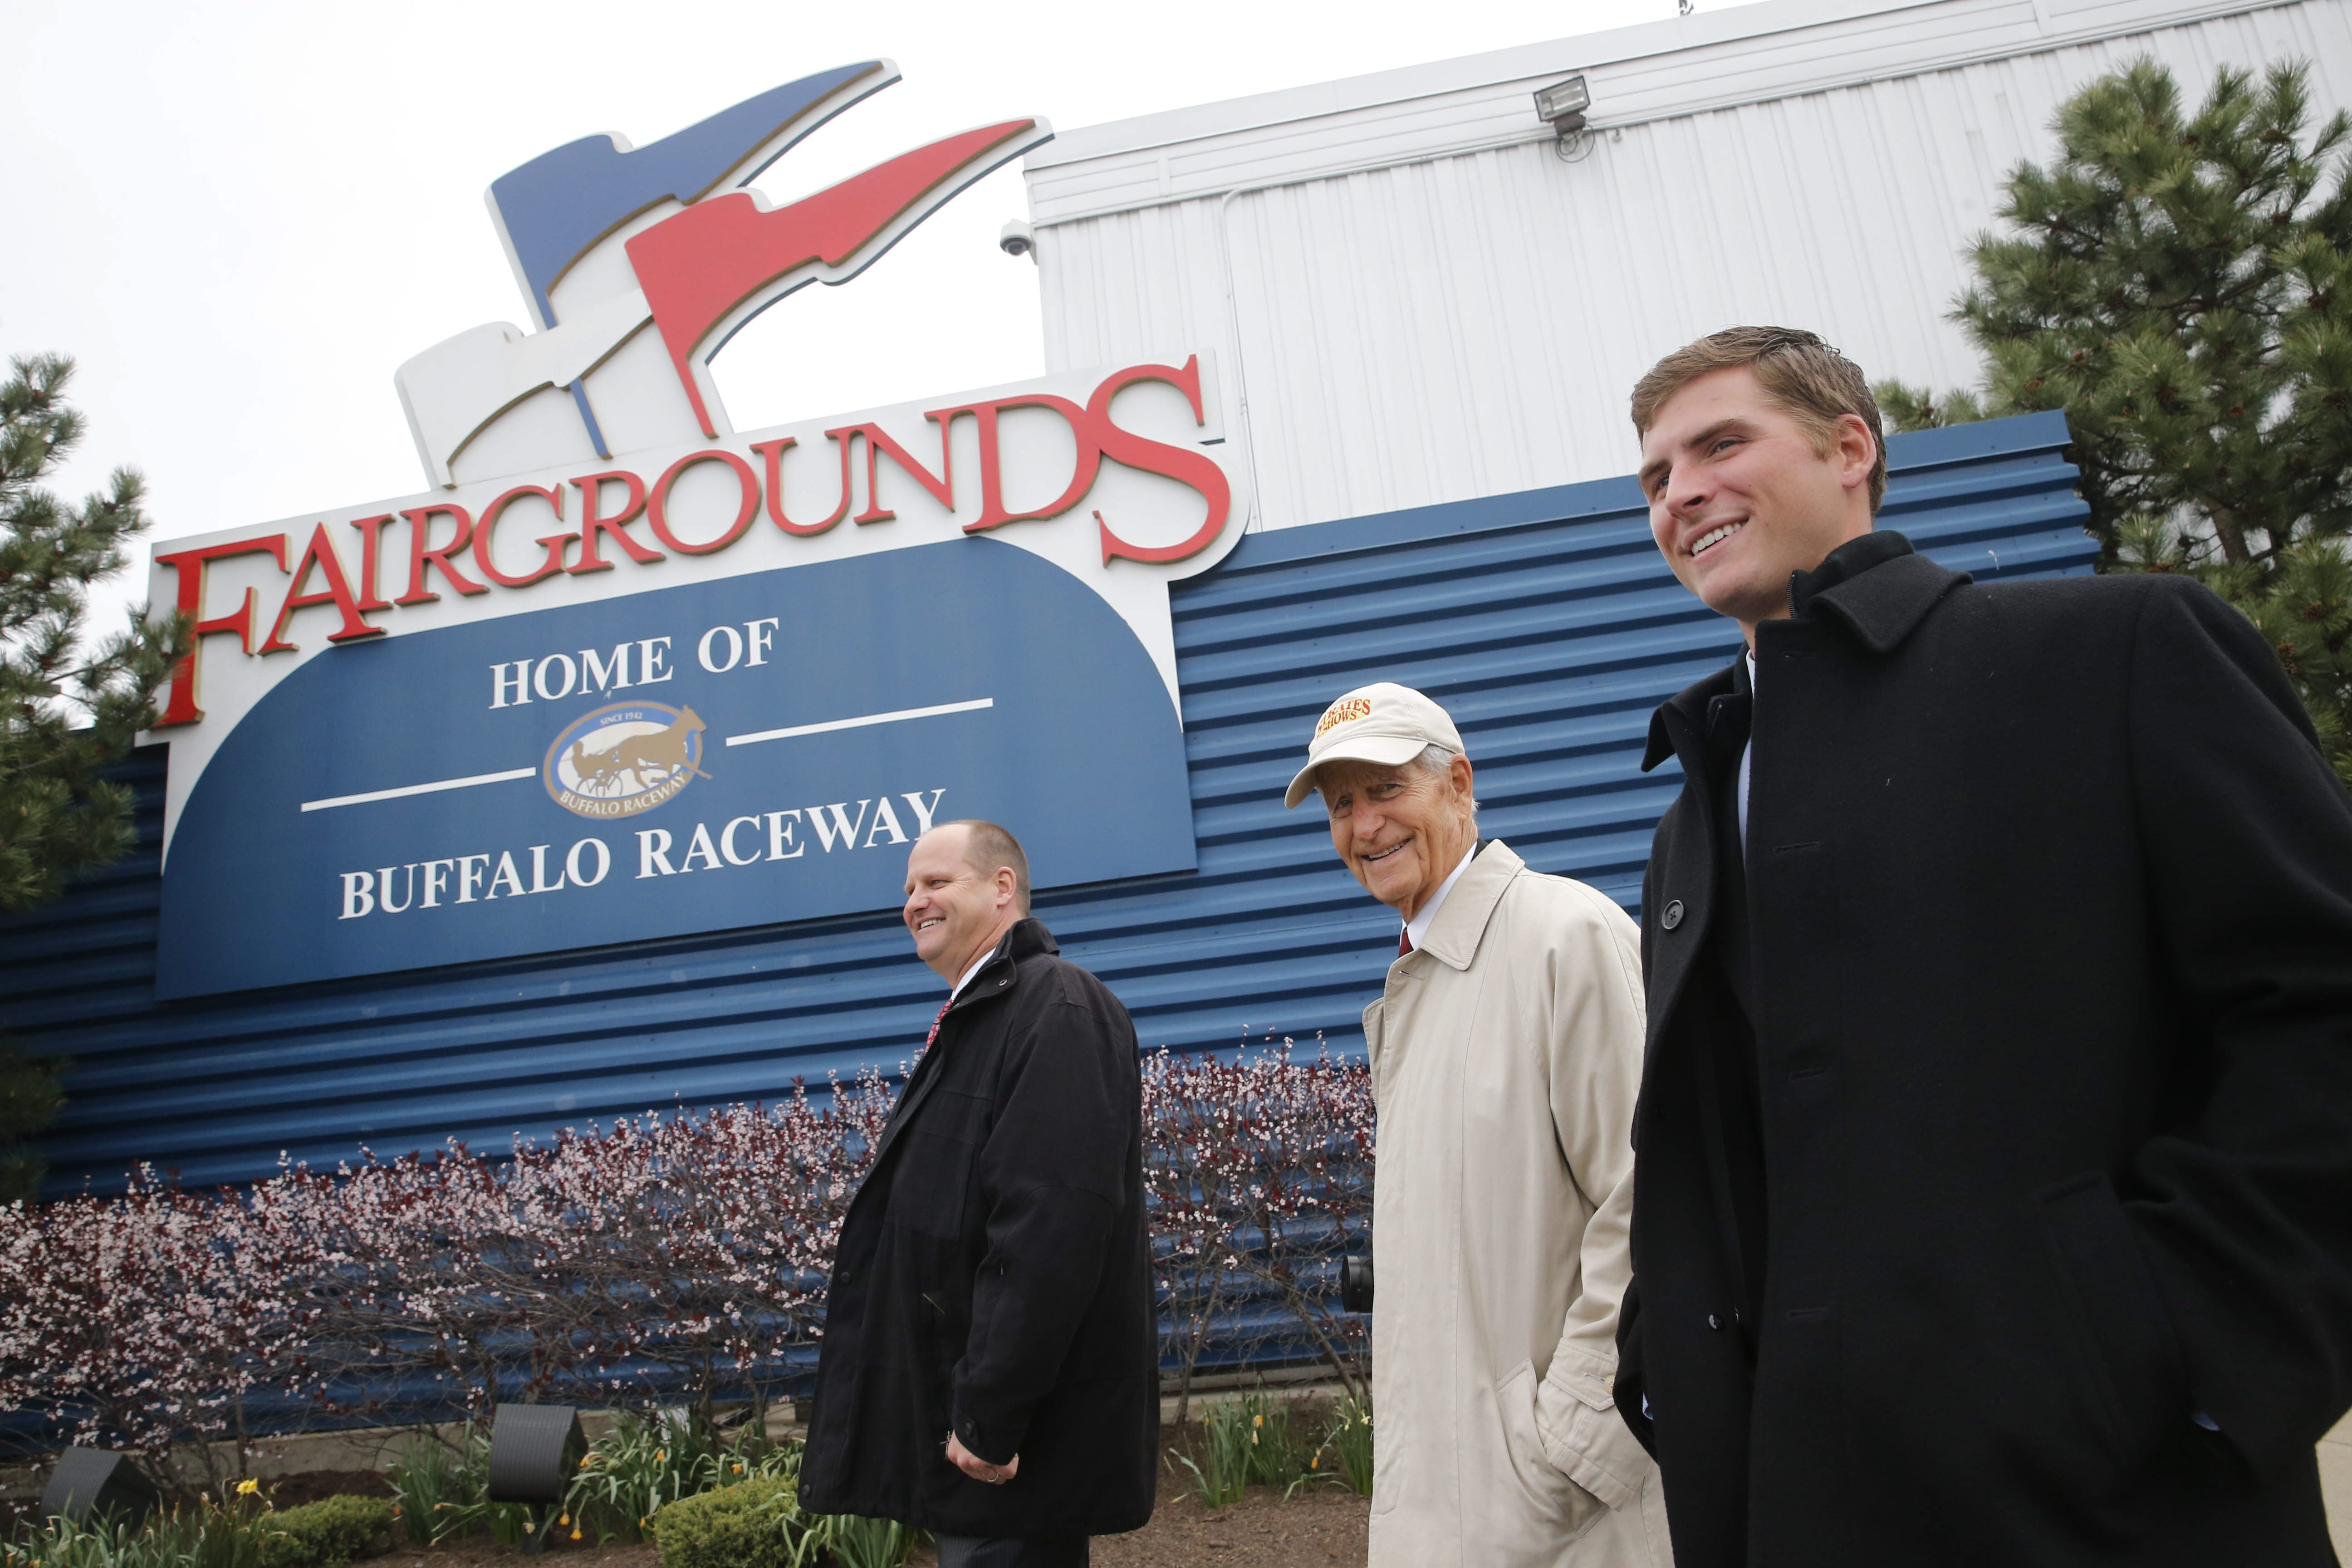 Three generations of the Strates family, from left, John Strates, E. James Strates and Nick Strates, who have provided the carnival for the Erie County Fair since 1924, walk on the fairgrounds following an event to mark the signing of a new 10-year contract to continue their relationship with the Erie County Agricultural Society, Friday, April 29, 2016.  ()